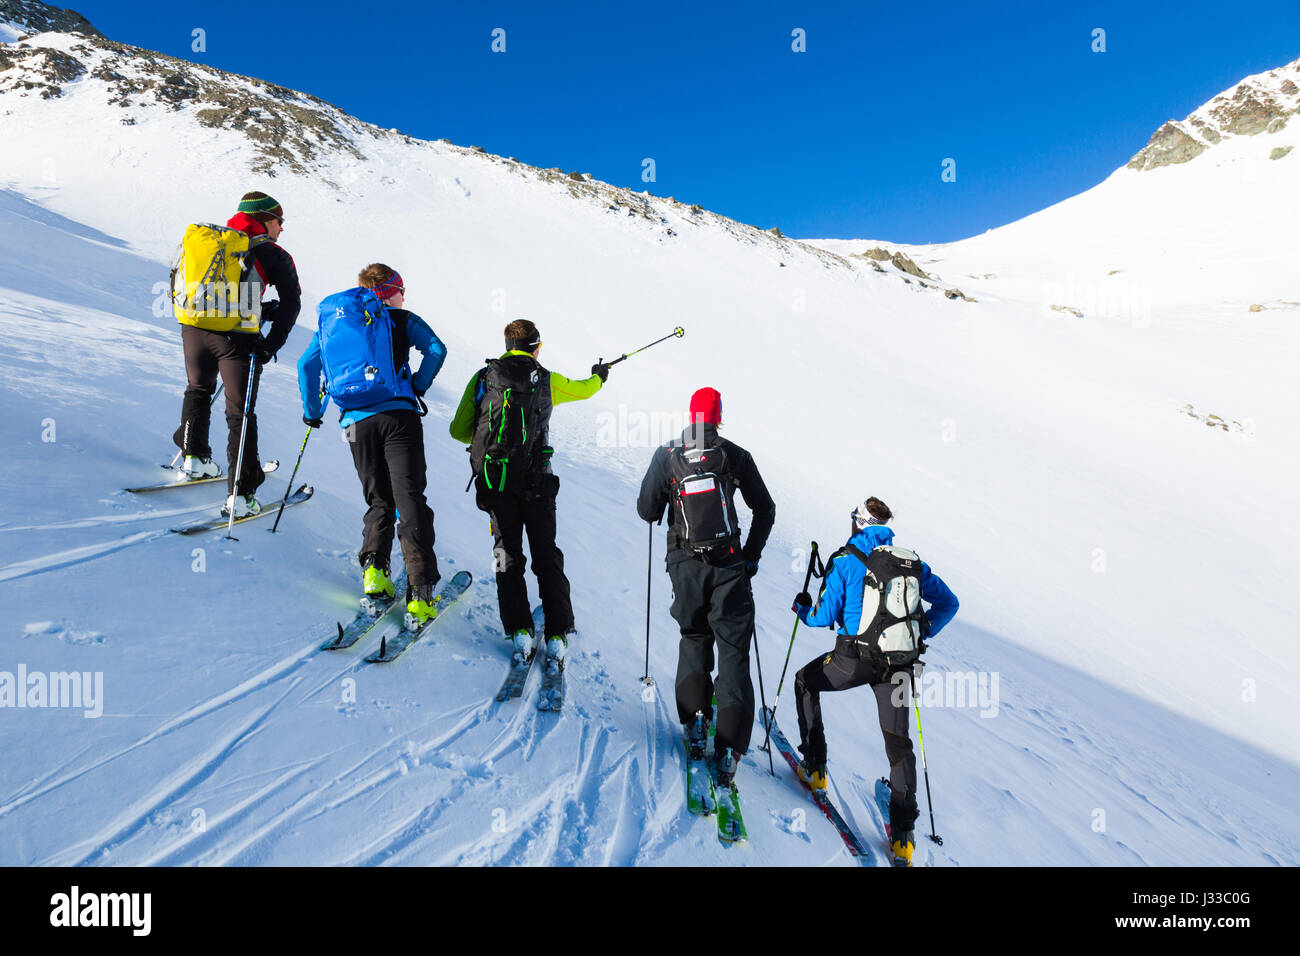 Mountain Guide ski touring with a group, avalanche assessment on a ski tour, risk management with groups, Heidelberger Stock Photo